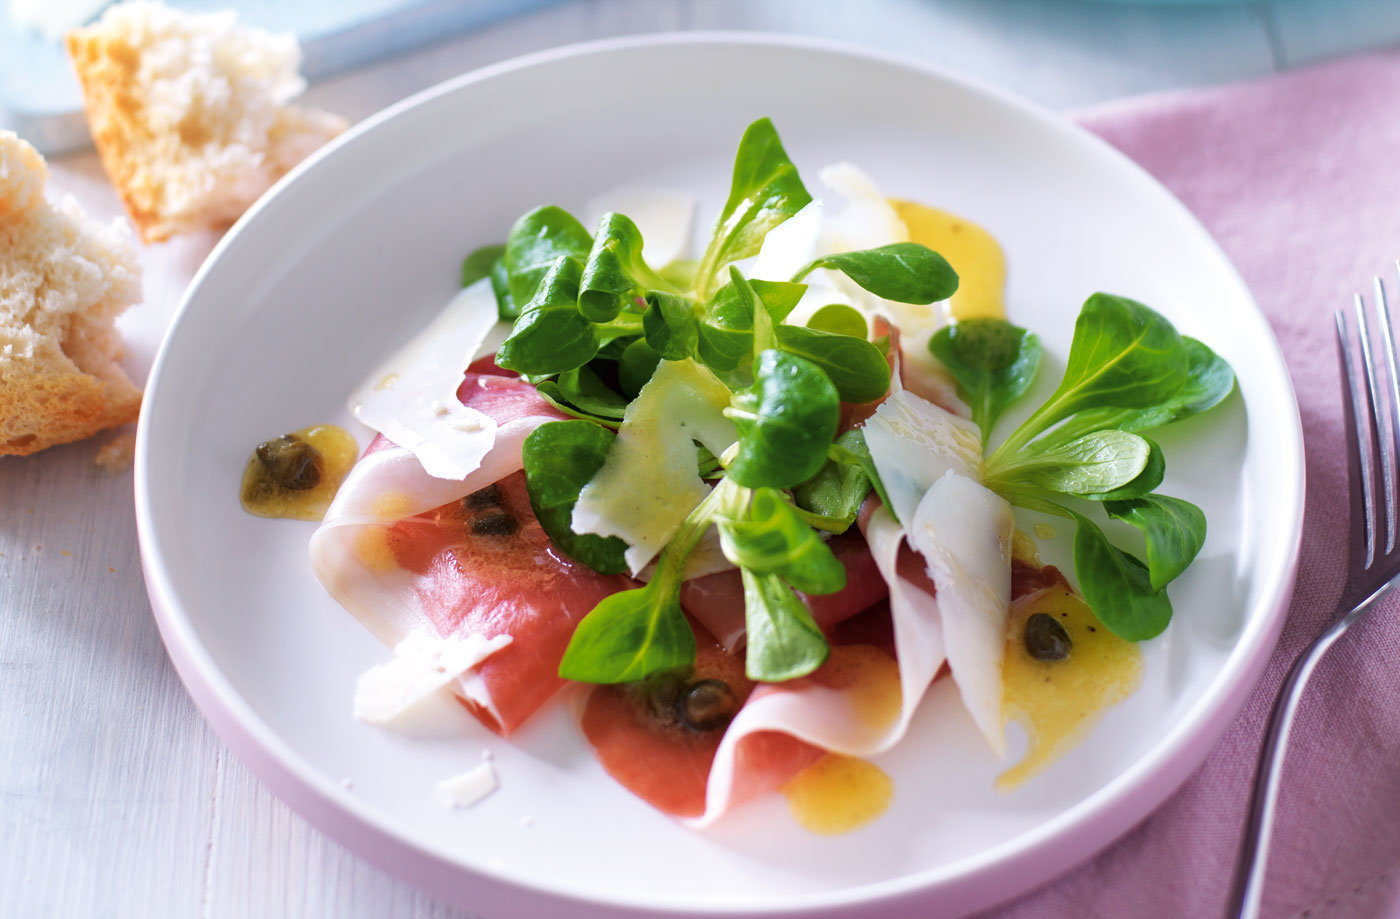 Parma ham and lamb's lettuce recipe